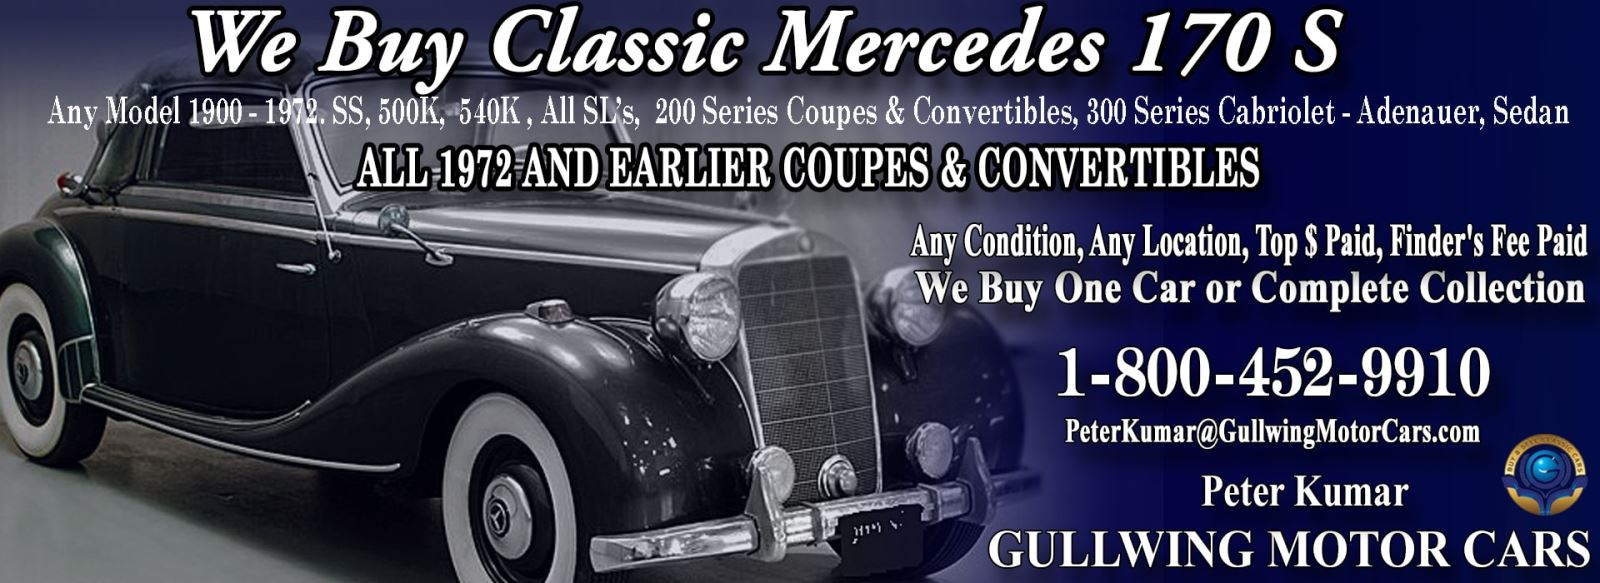 Classic Mercedes 170S for sale, we buy vintage Mercedes 170S. Call Peter Kumar. Gullwing Motor